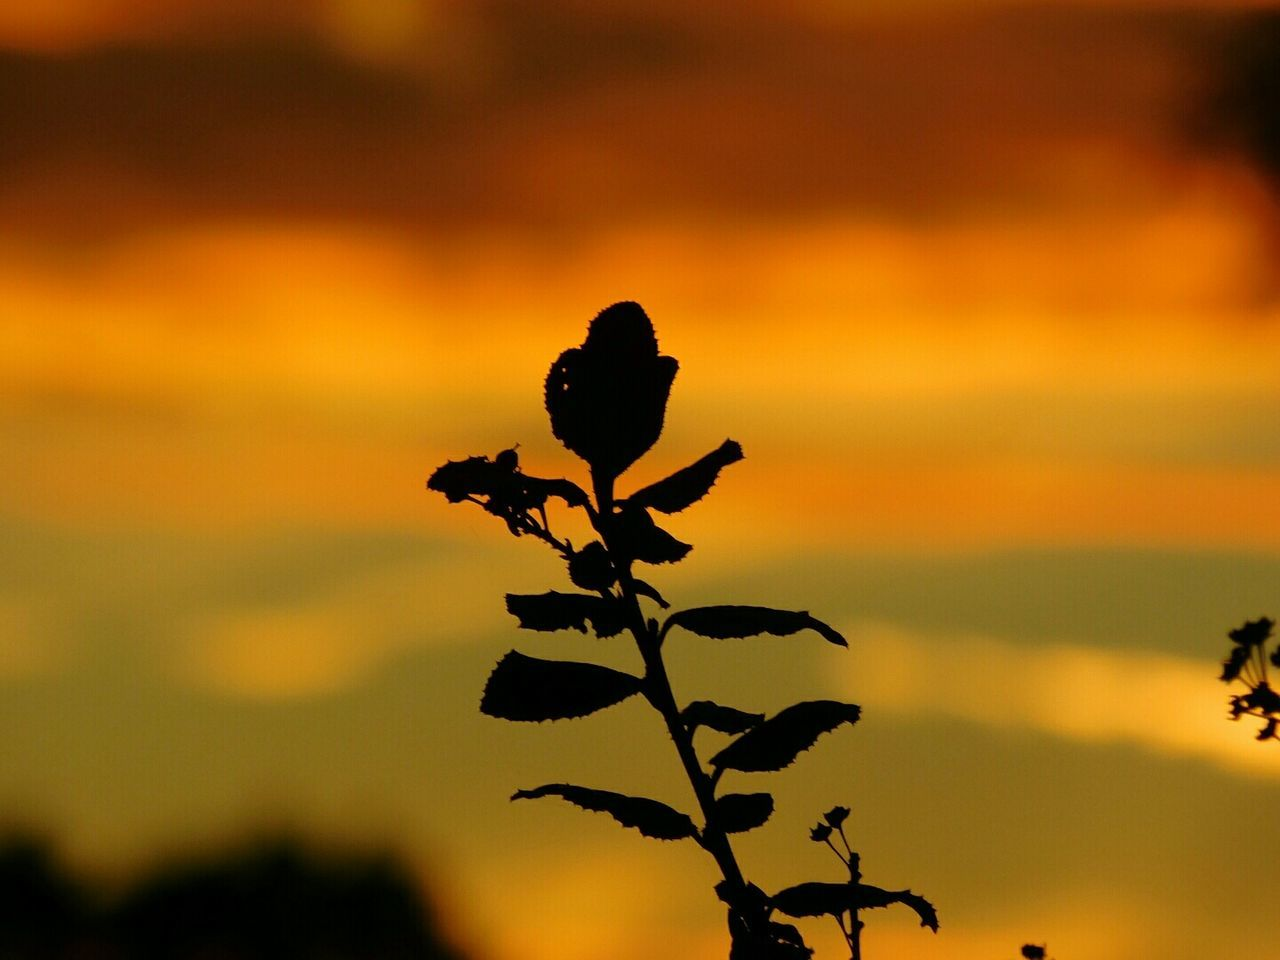 Silhouette Plant Against Cloudy Sky During Sunset